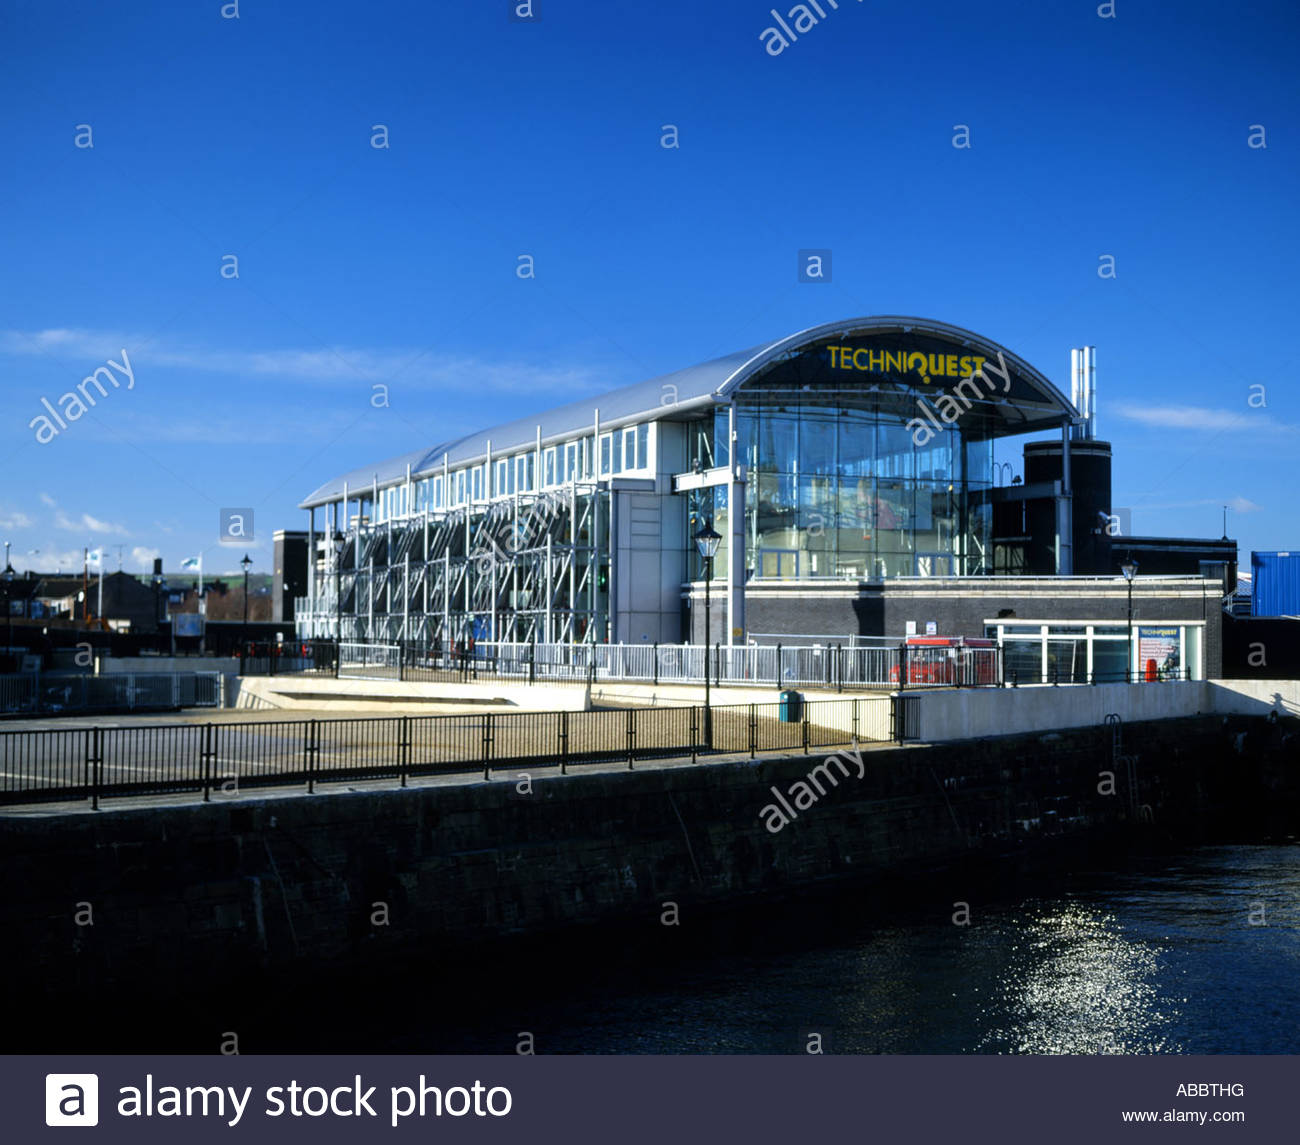 Techniquest South Wales, techniquest cardiff bay cardiff south wales uk Stock Photo ...